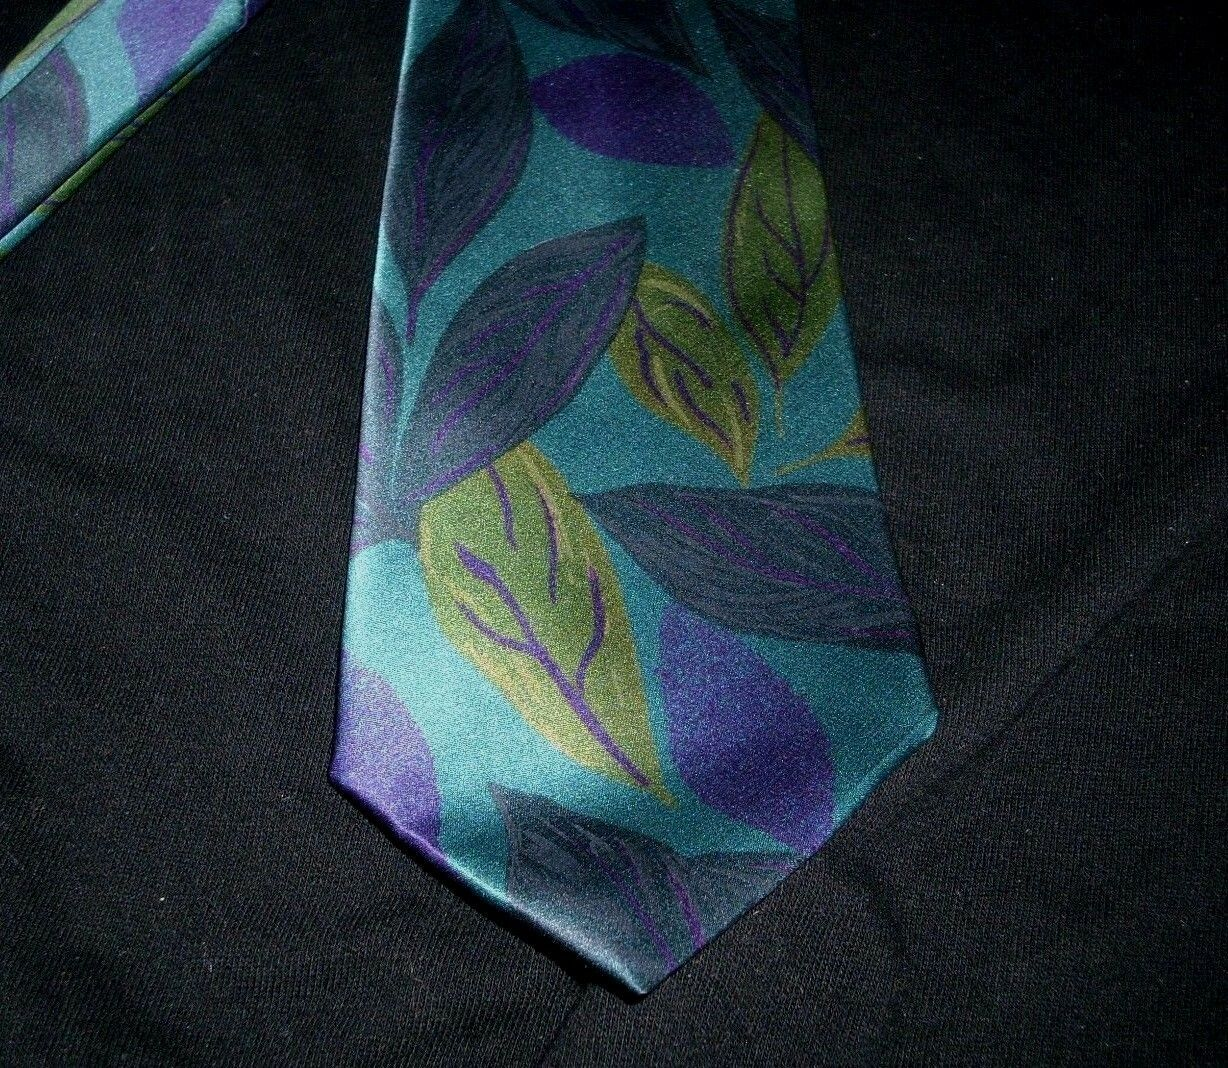 Primary image for MEN'S VINTAGE FRATELLI PURPLE BLUE GREEN LEAF SHAPES PATTERN ITALY 100% SILK TIE